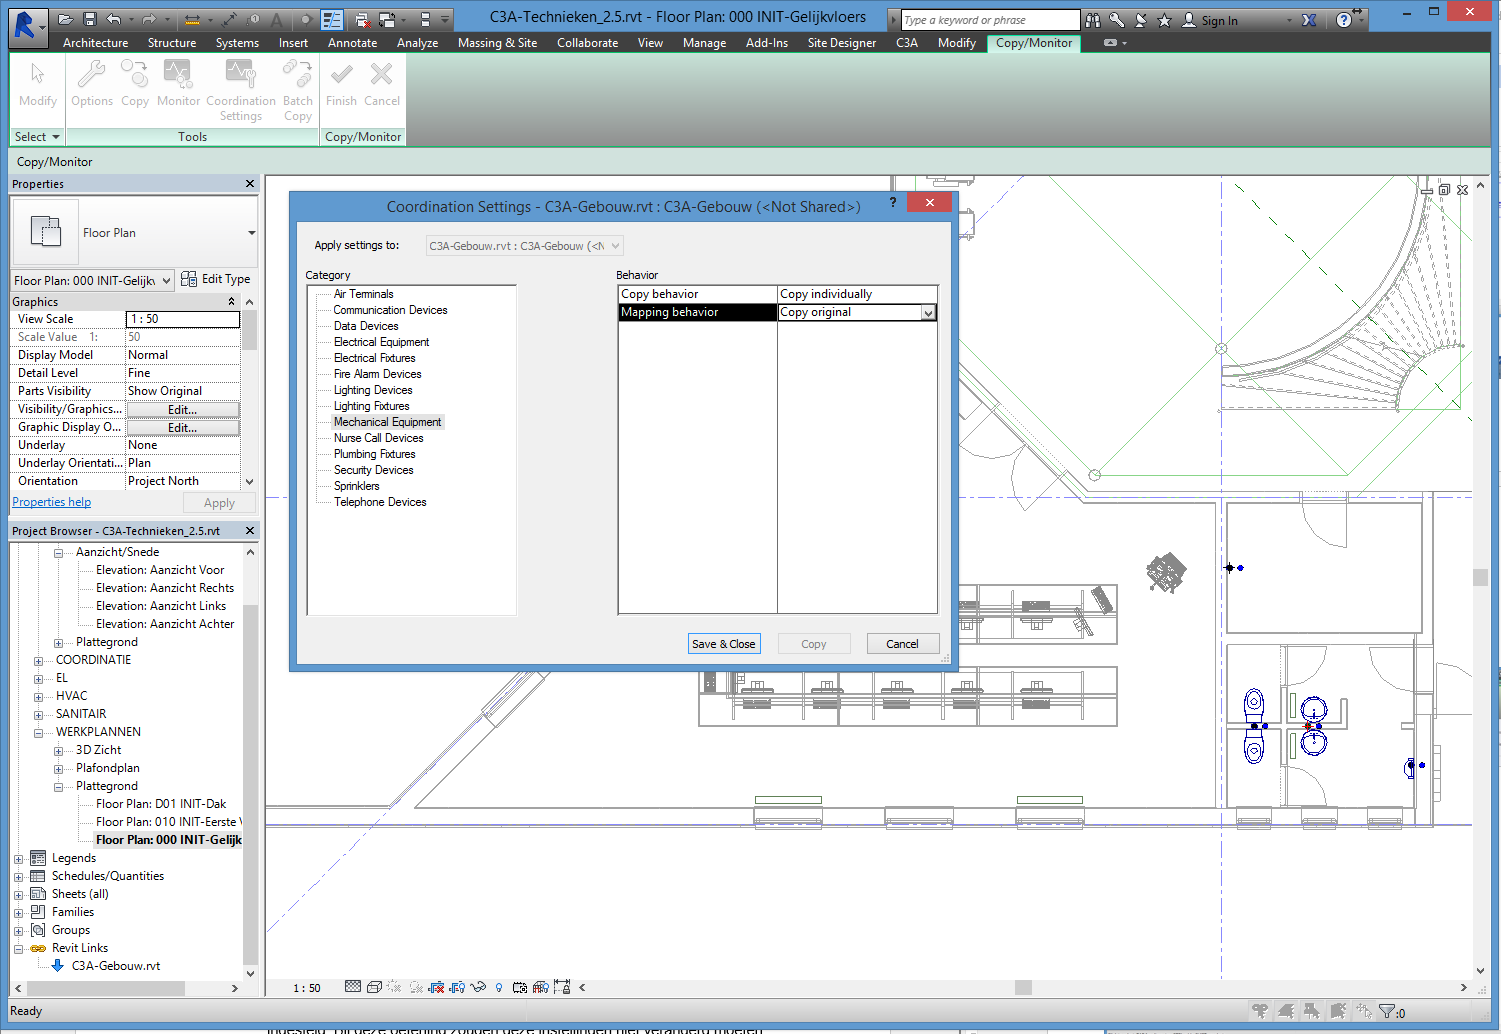 blad 22 REVIT Multidiciplinair Samenwerken C3A-Witas Workshop 18 mrt 2015